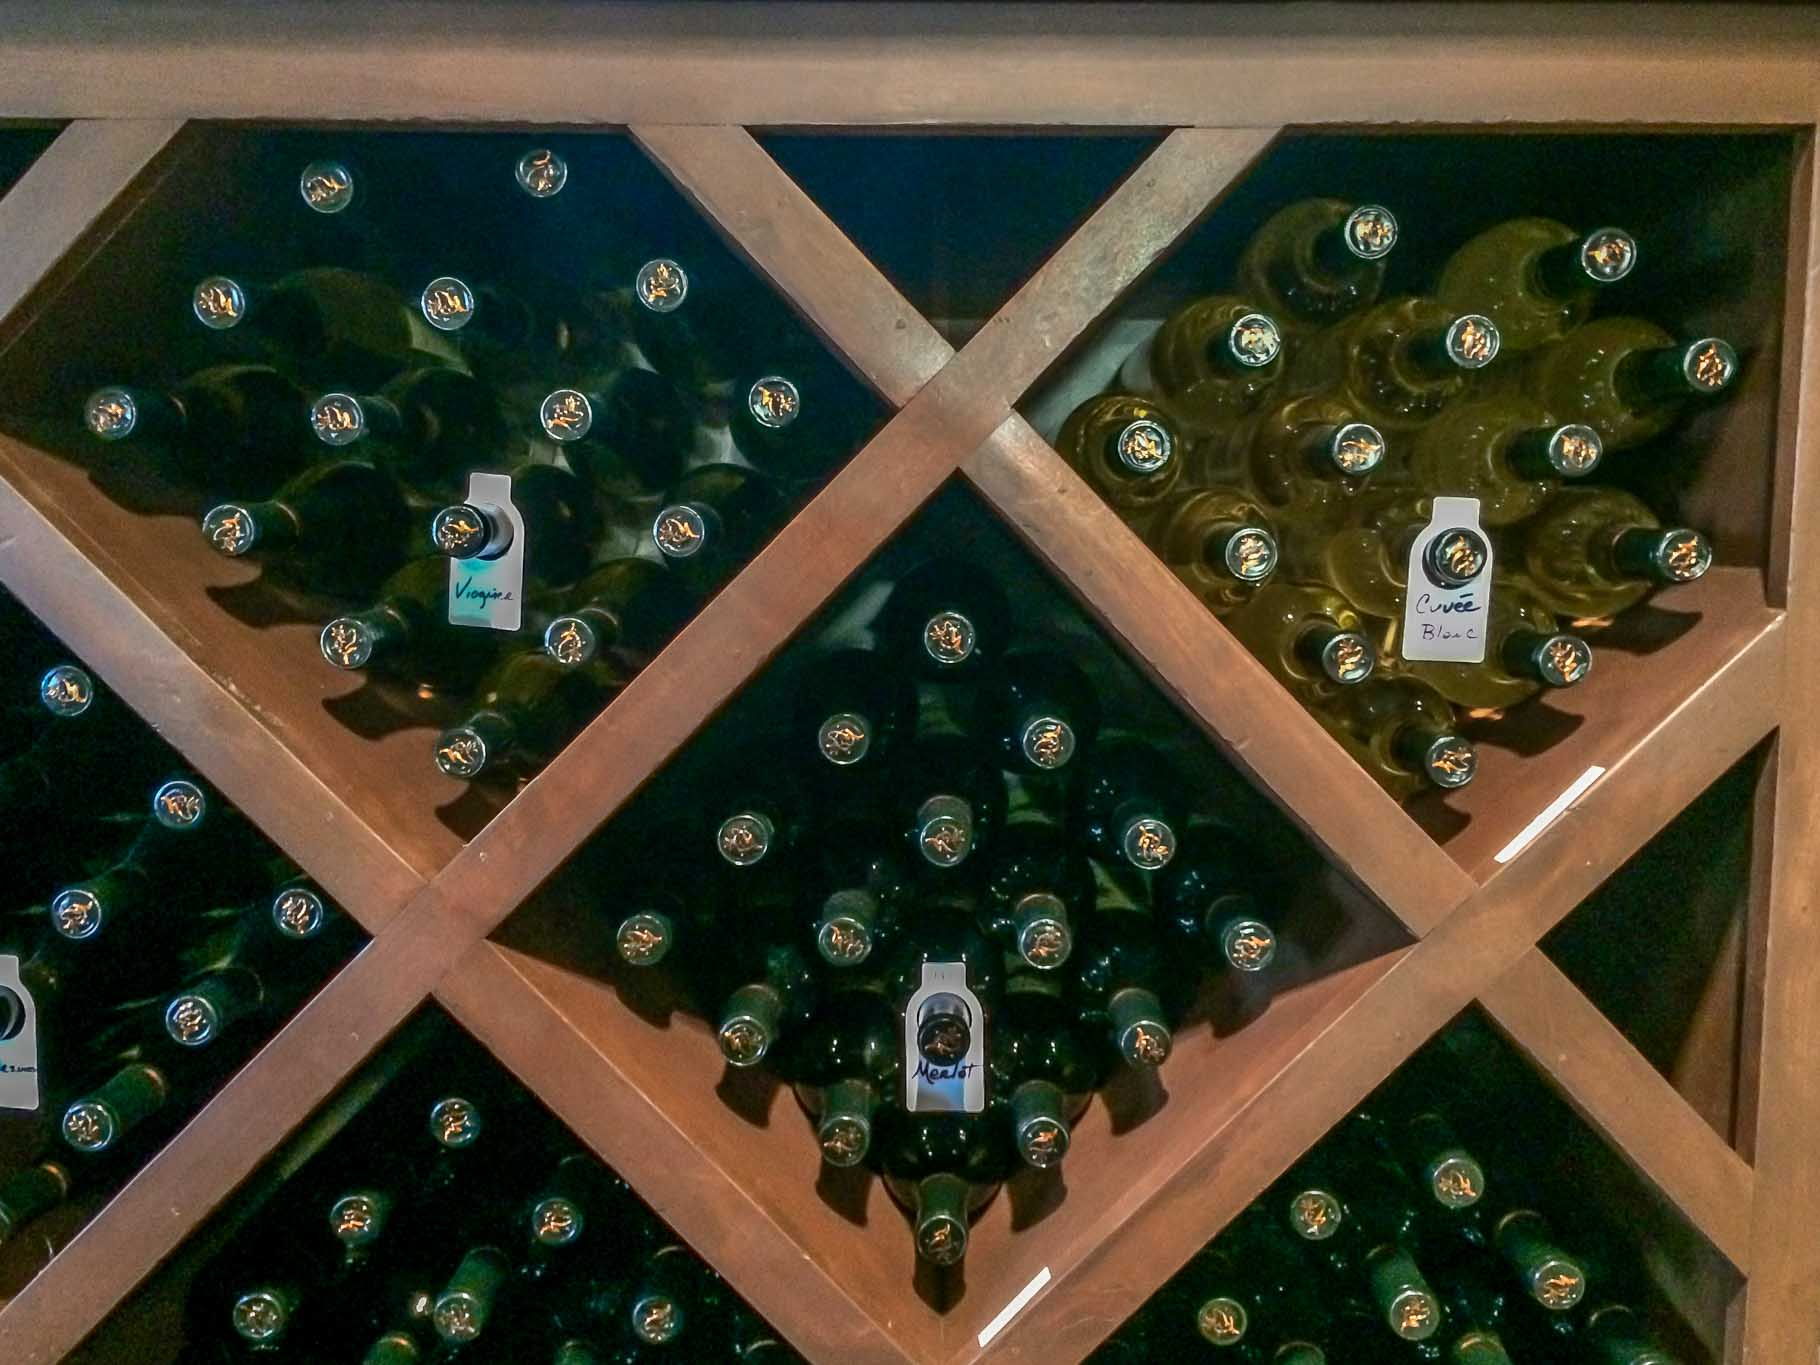 Bottle display at Grape Creek, one of the top Fredericksburg TX wineries